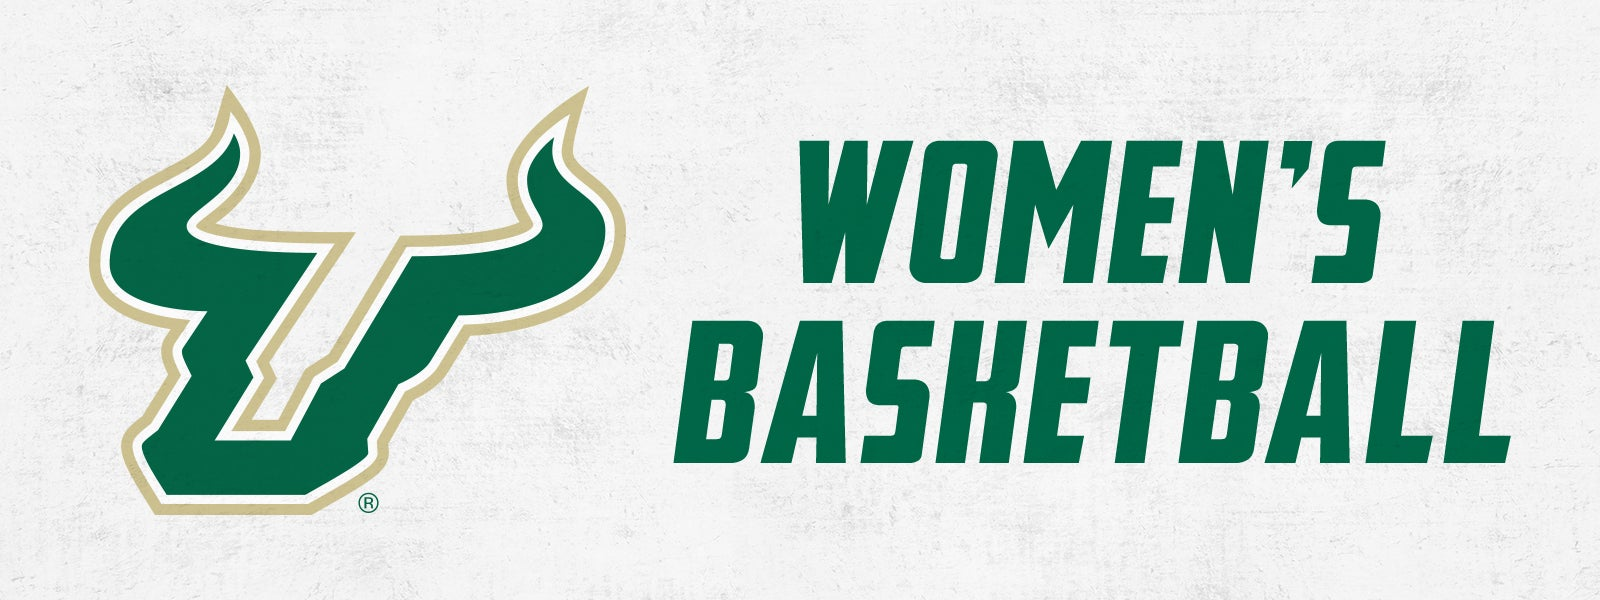 USF Women's Basketball vs. Idaho